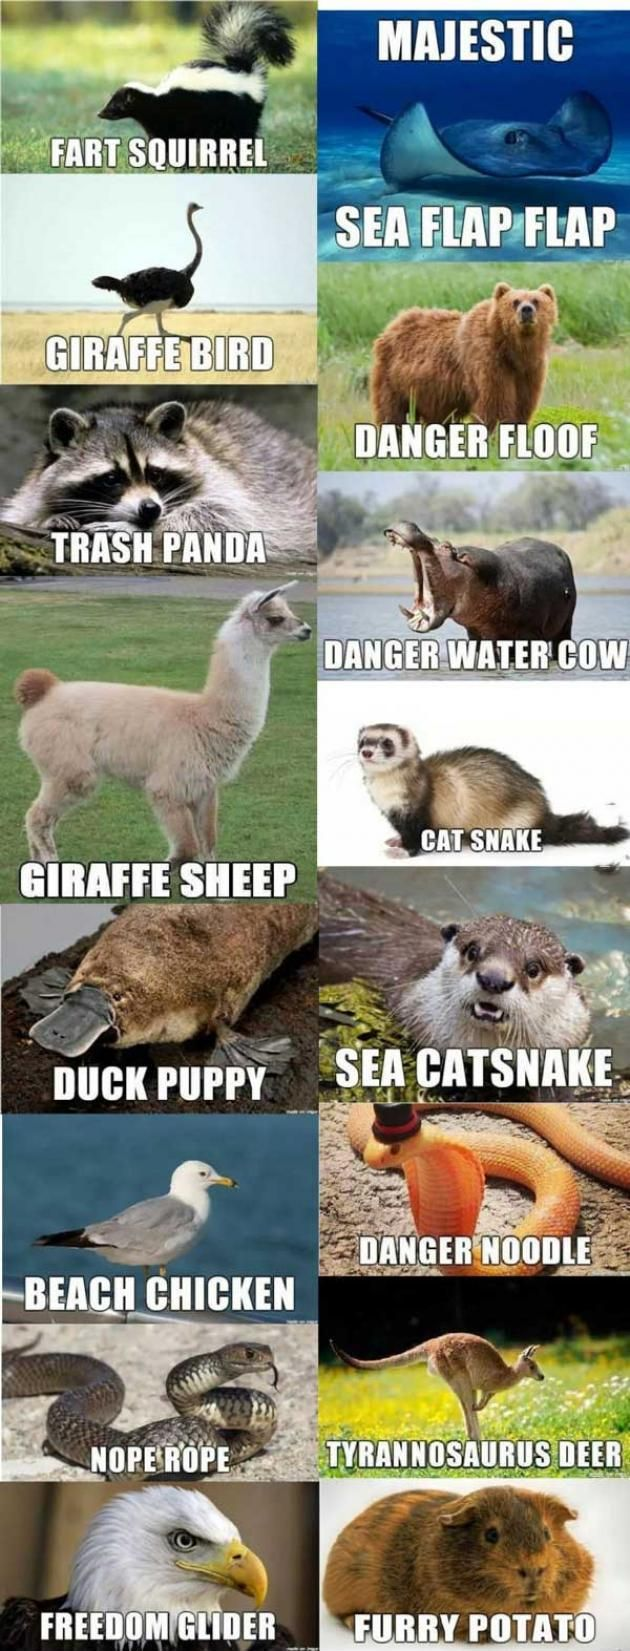 If+I+had+to+name+some+animals.